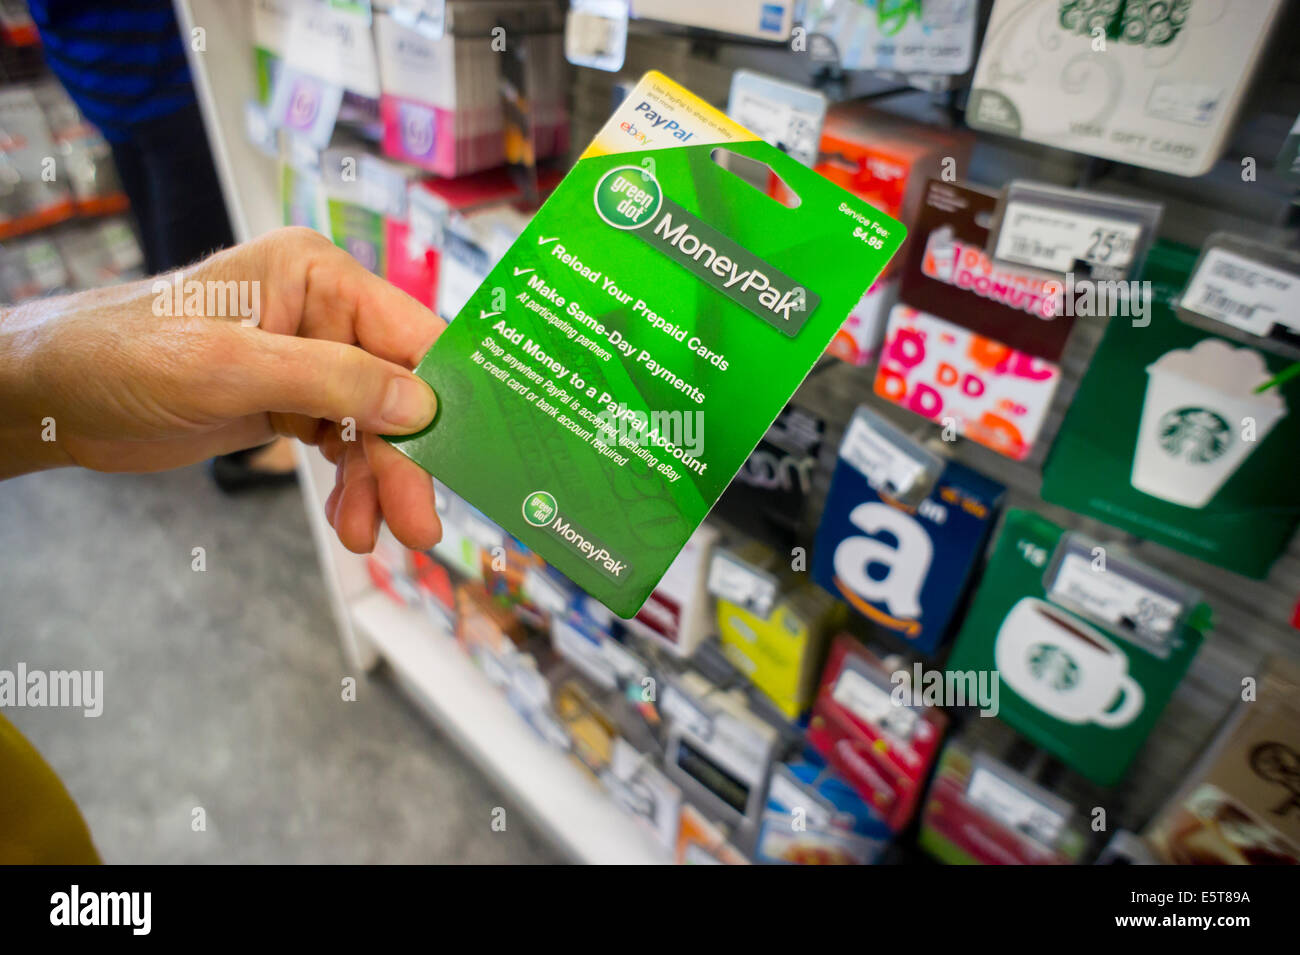 a shopper chooses a green dot brand moneypak prepaid card in a a shopper chooses a green dot brand moneypak prepaid card in a store in new york